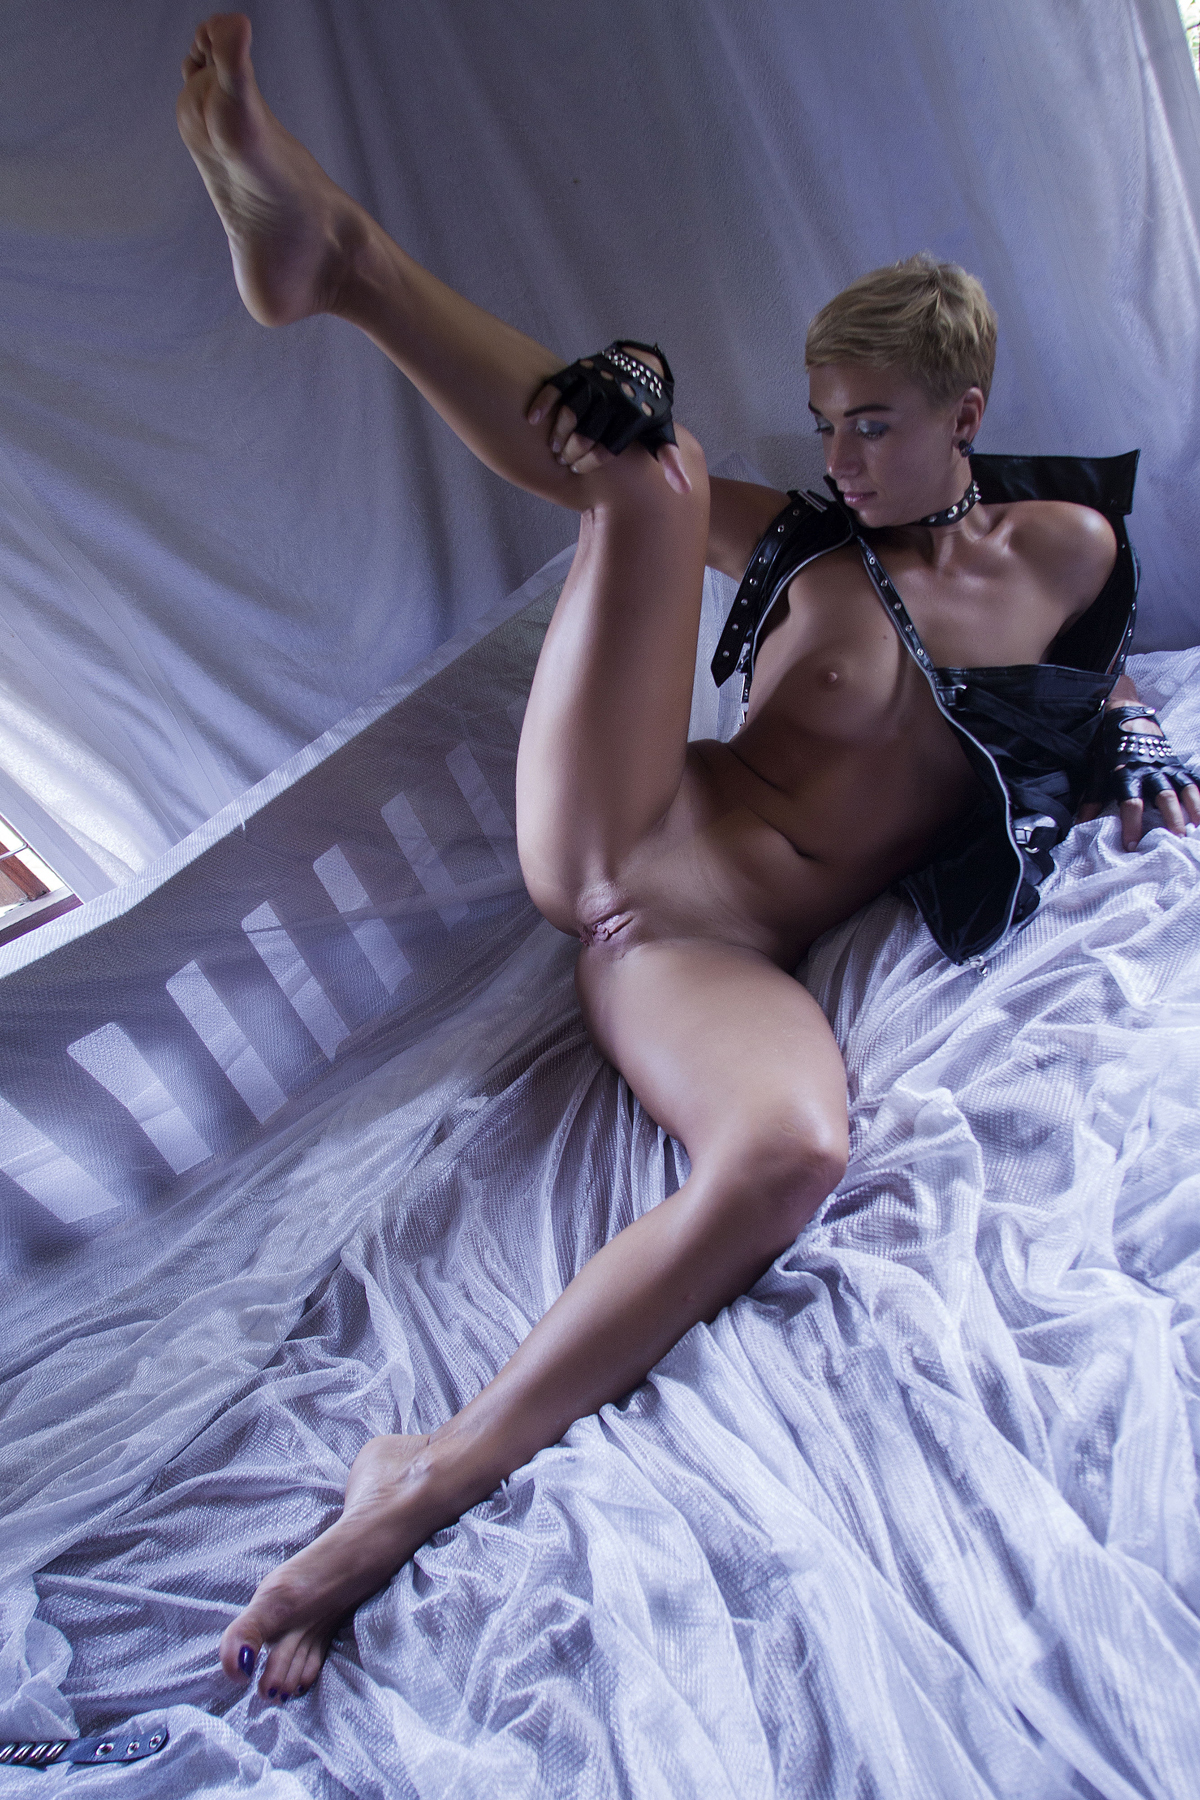 Lindra Rebellious Slut in Chains - picture 02